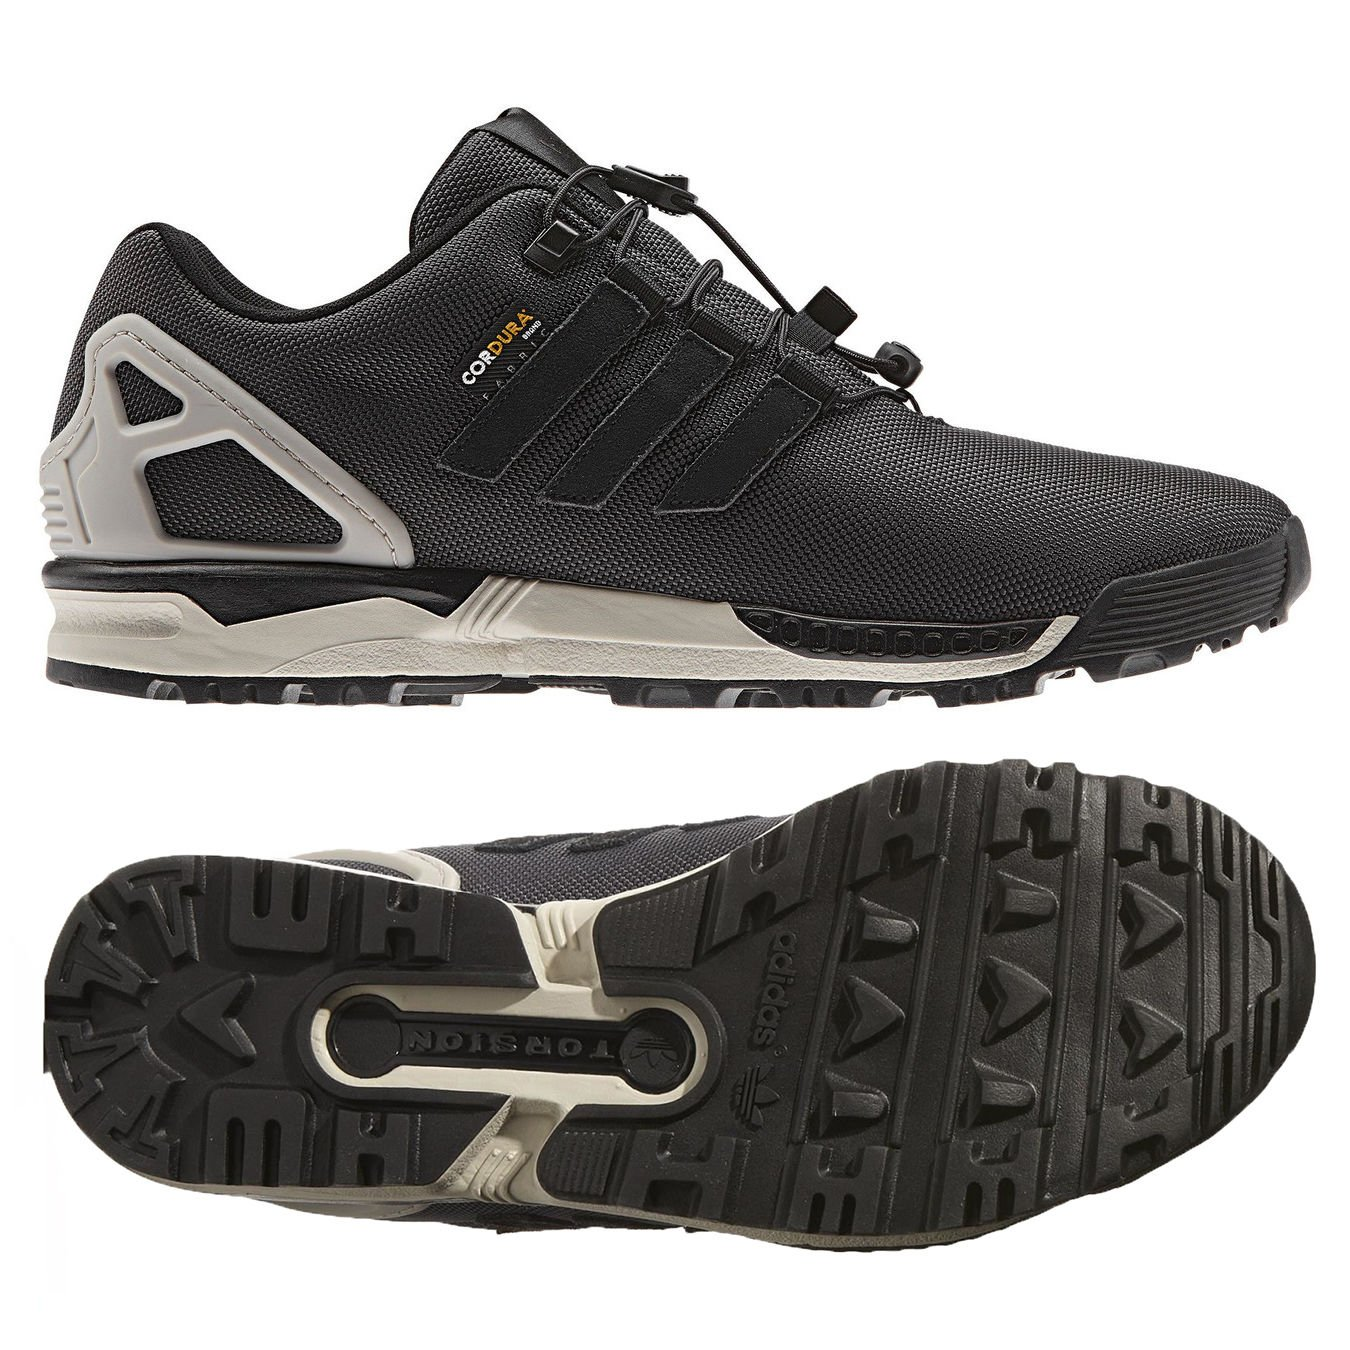 new products cb965 63a09 Galleon - Adidas Originals ZX Flux 8000 Winter B35535 Black ...